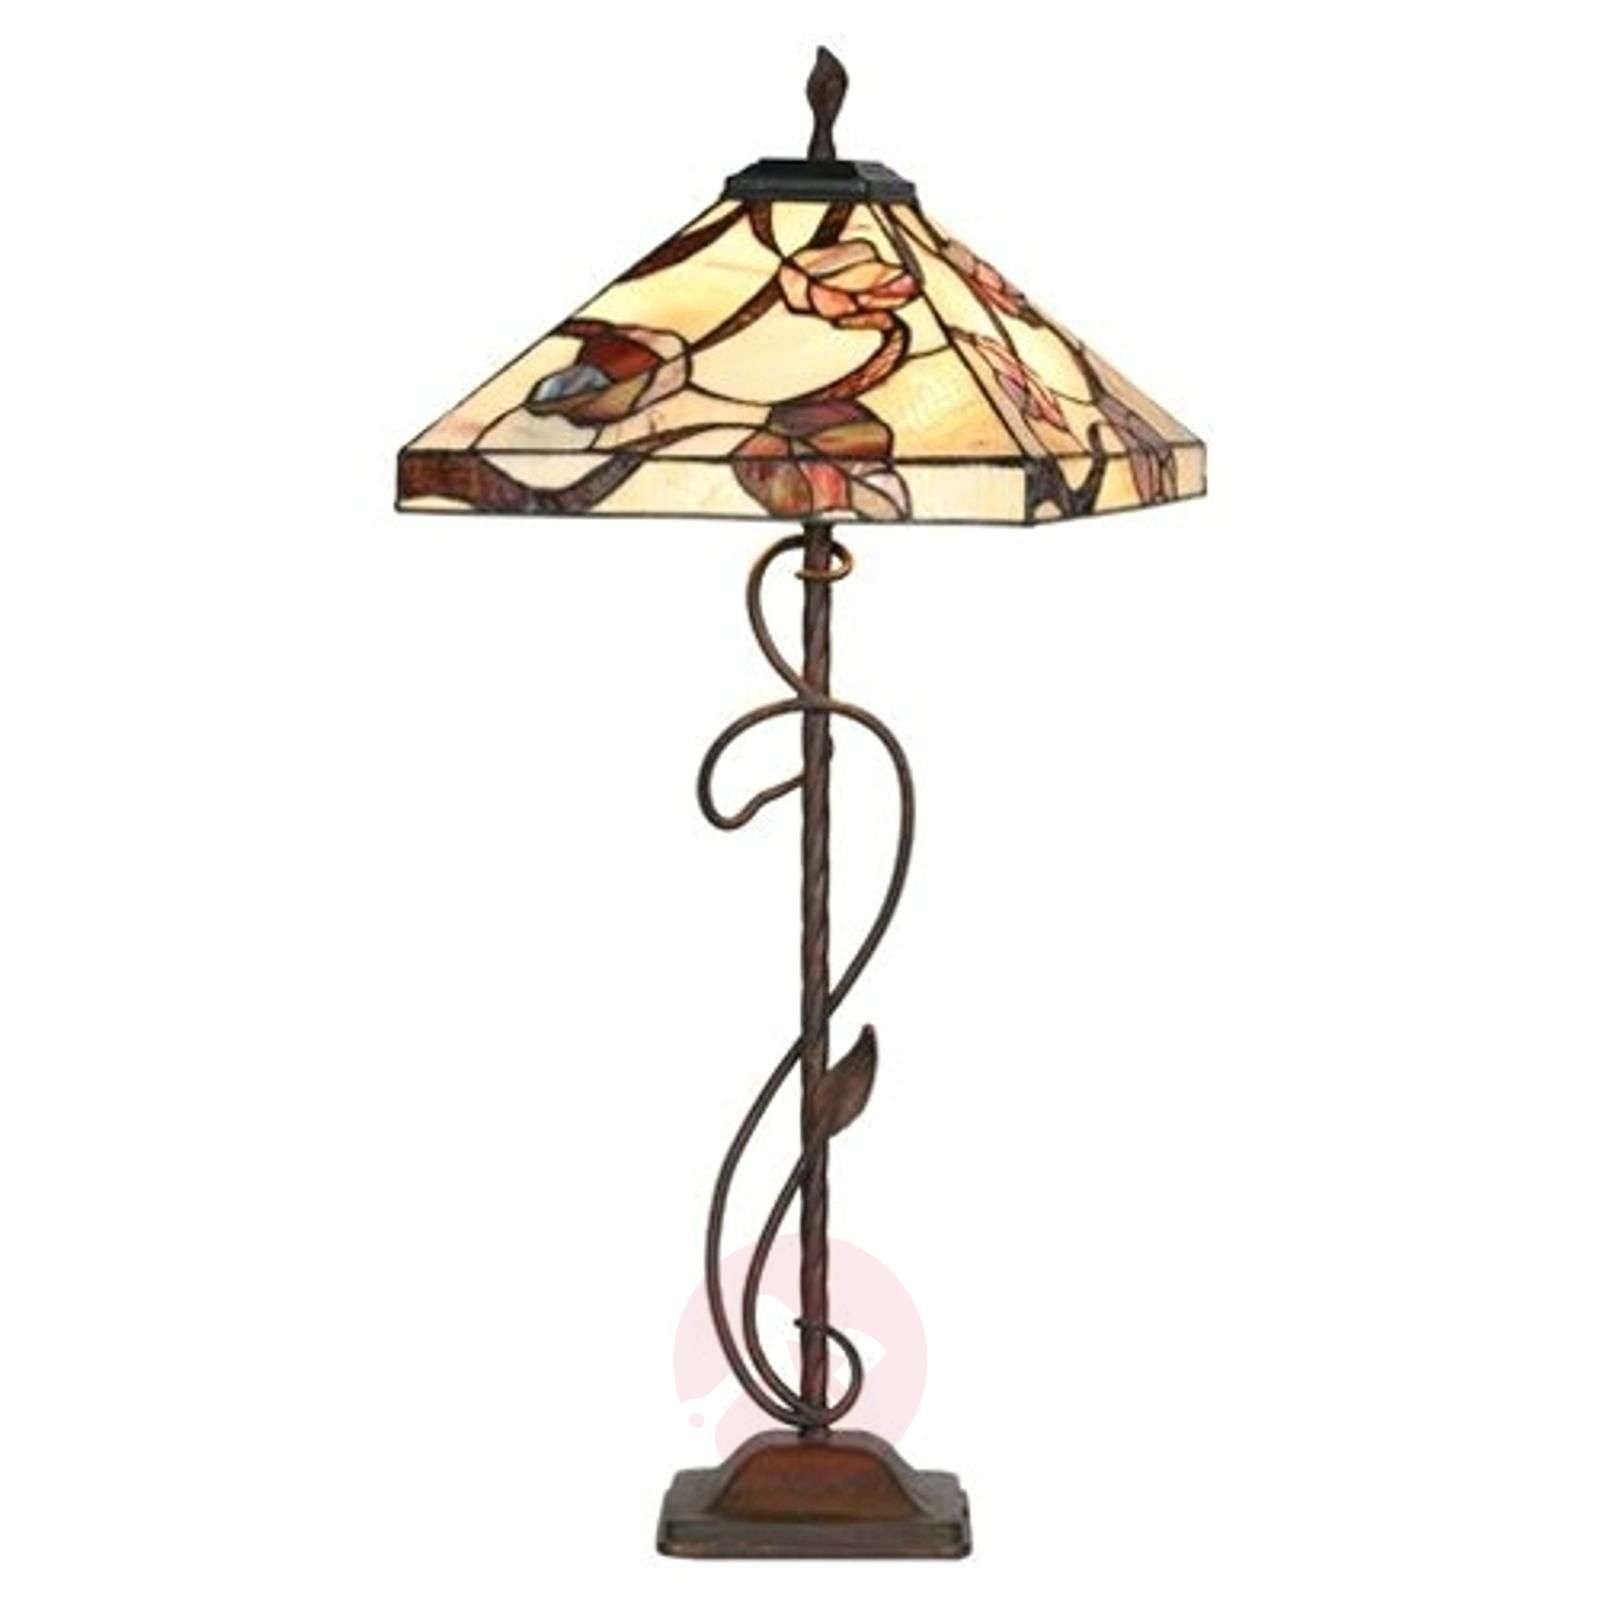 Appolonia floor lamp, Tiffany-style-1032135-01